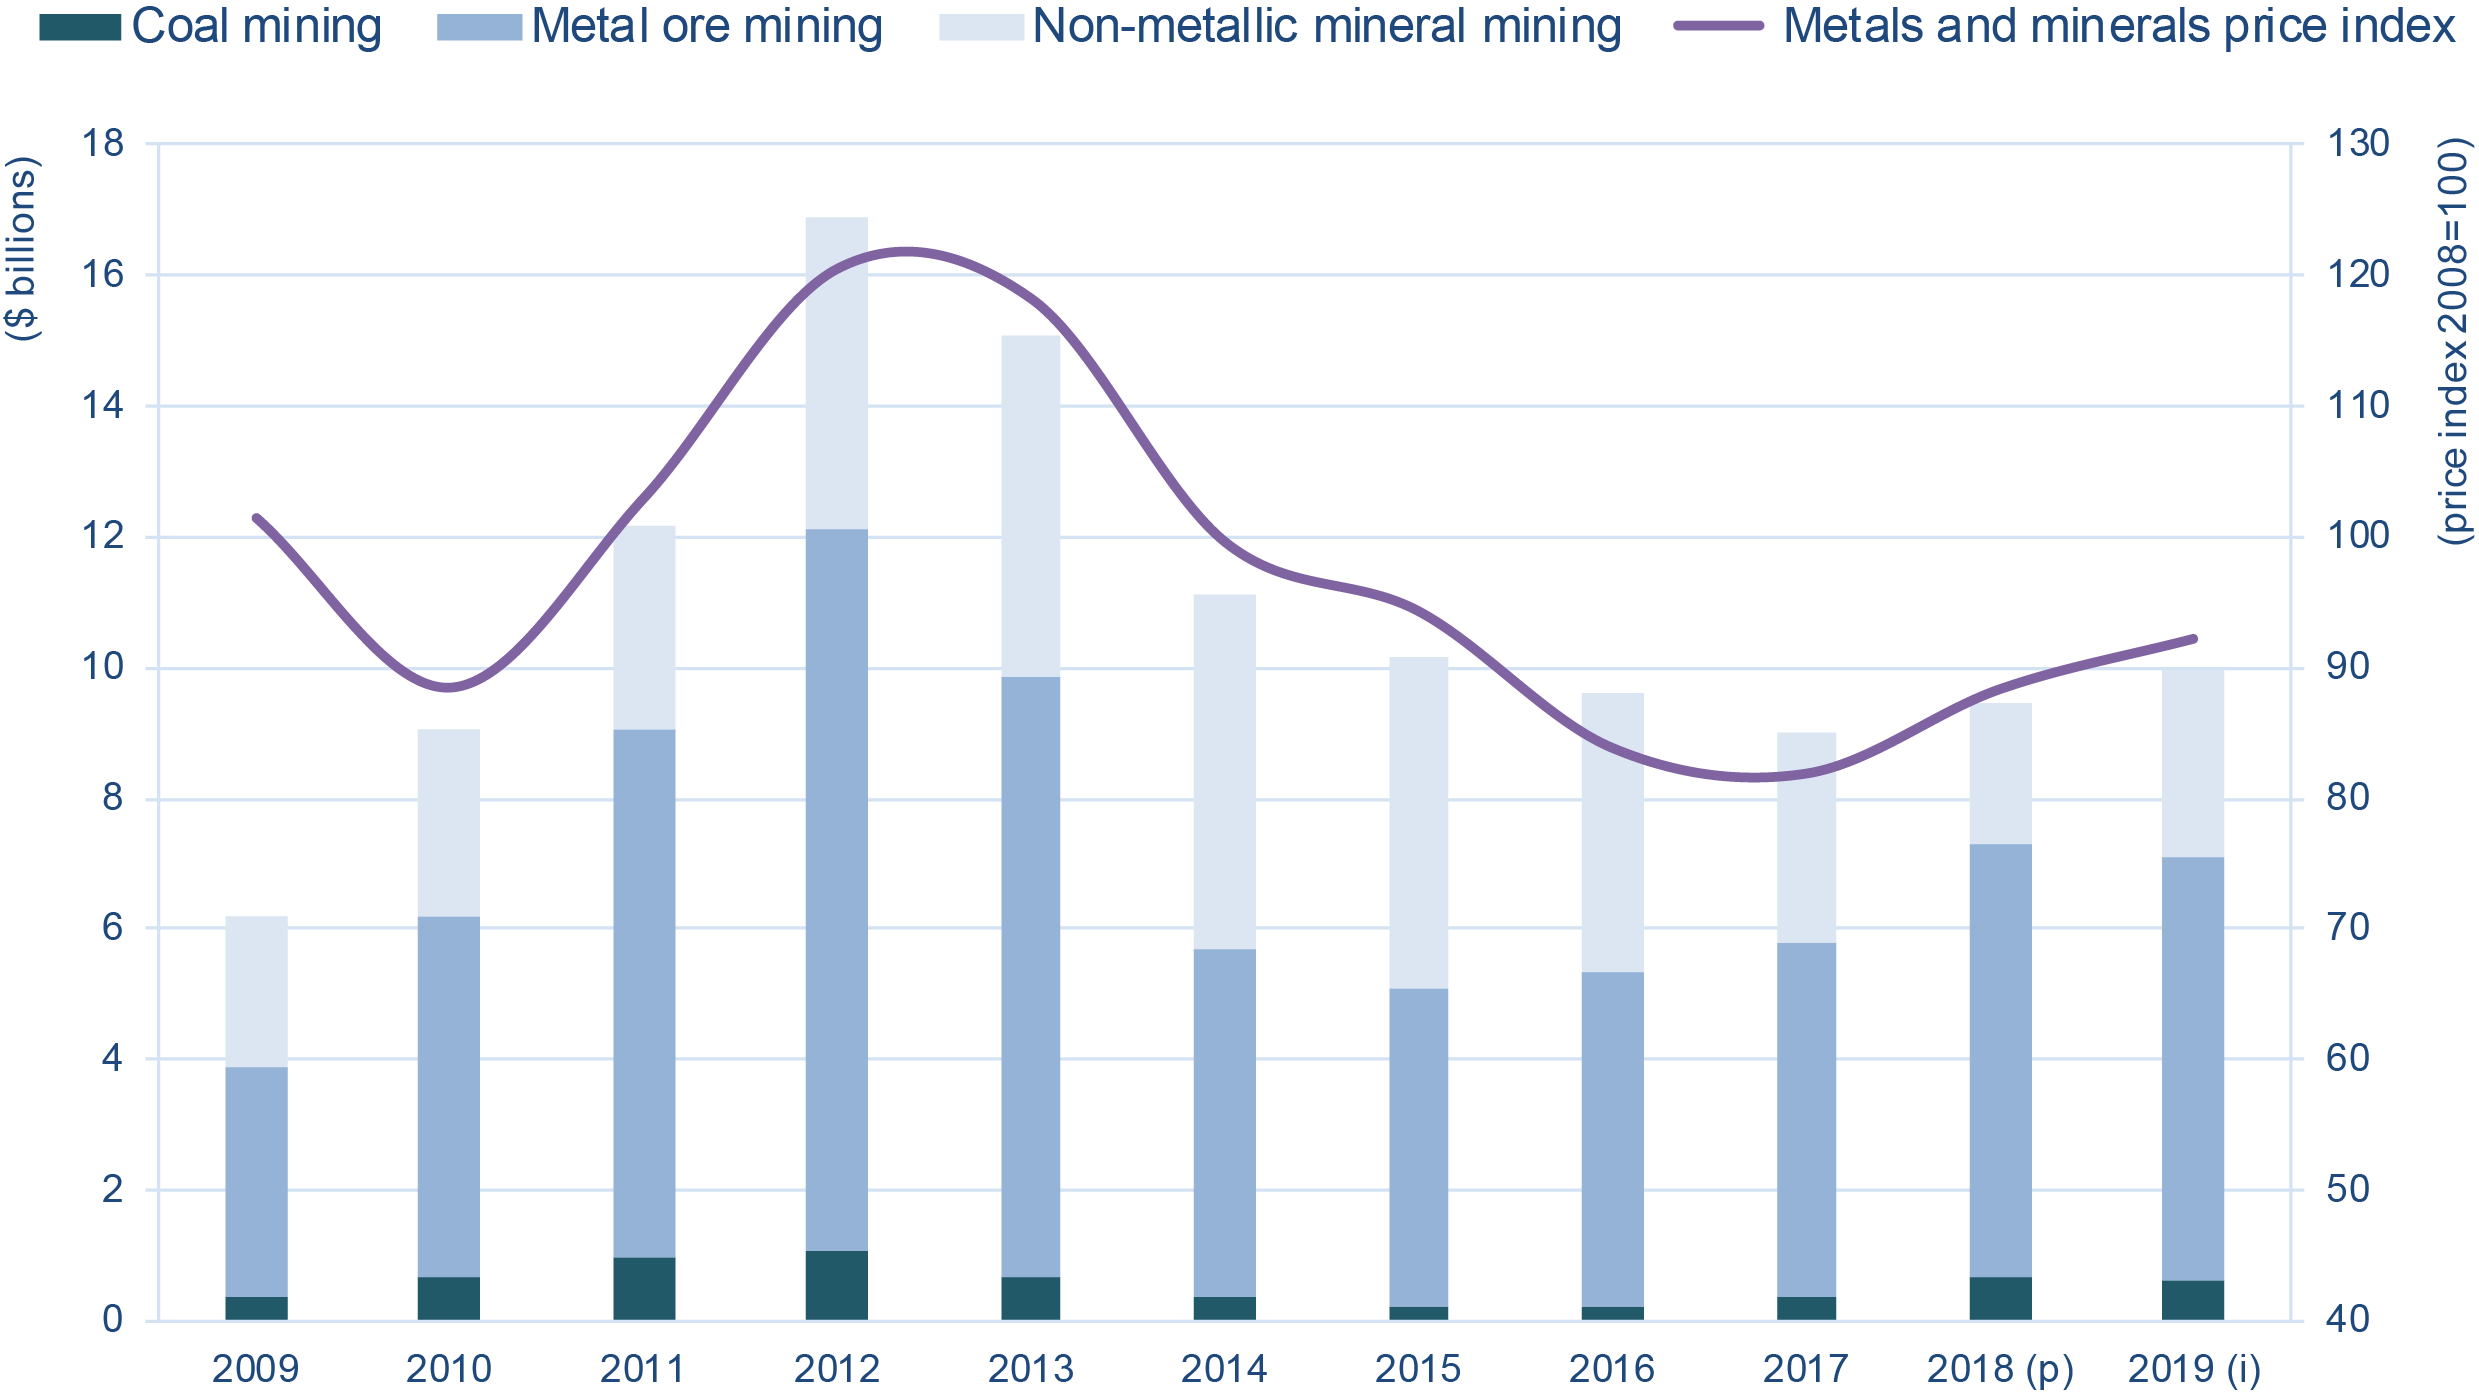 Capital expenditures, by subsector and with respect to the metals and minerals price index, 2009–19